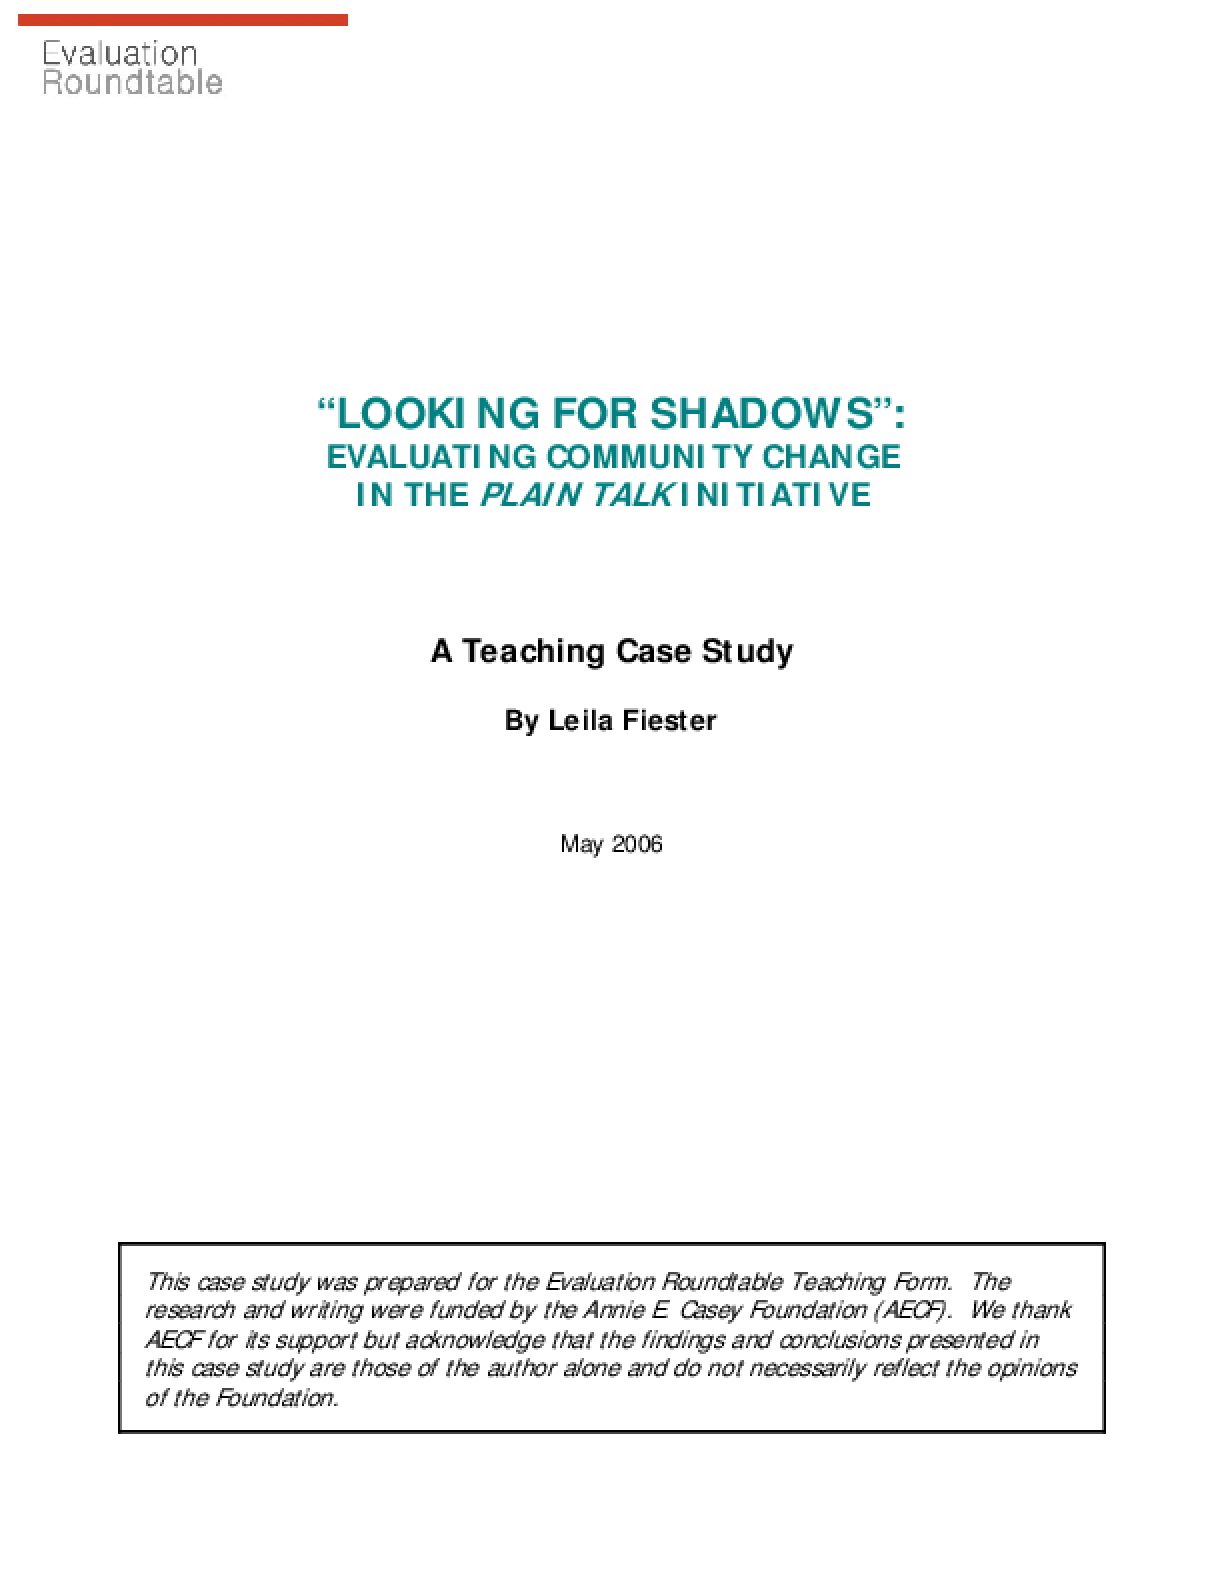 Looking For Shadows: Evaluating Community Change in the Annie E. Casey Foundation Plain Talk Initiative